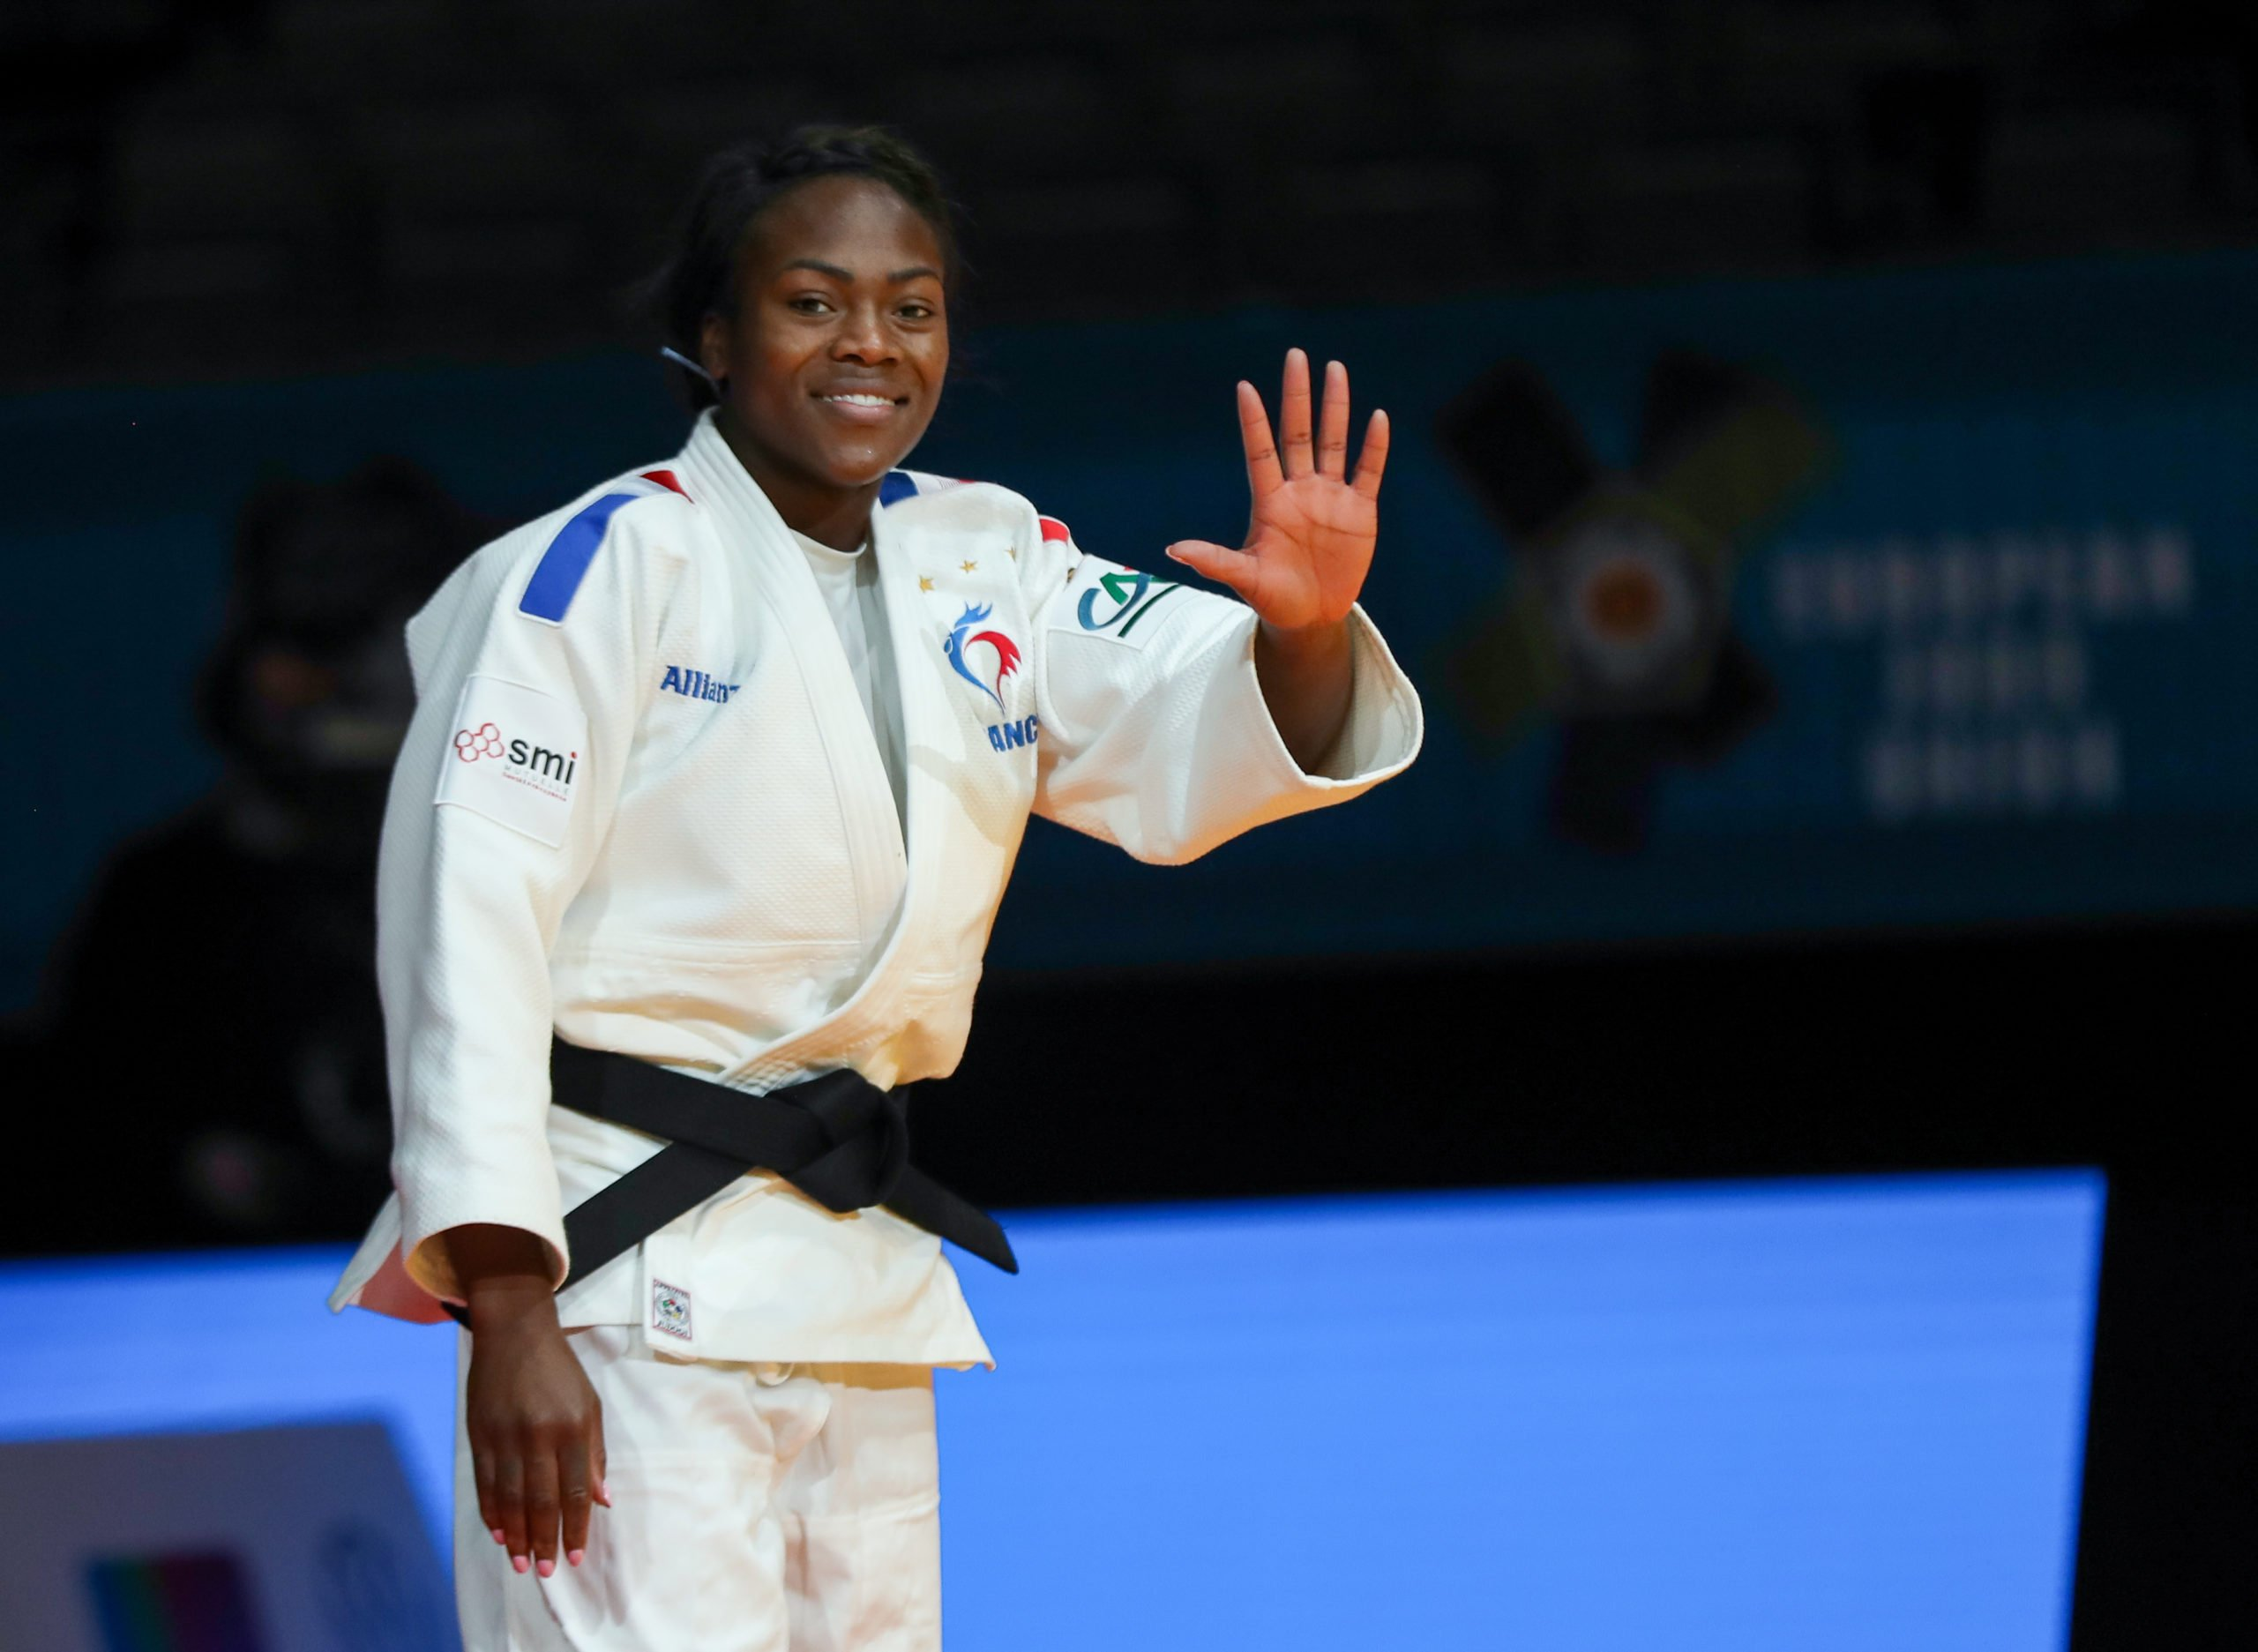 TOP-PLAYER: AGBEGNENOU CONTINUES HER SEIGE OF THE -63KG CATEGORY